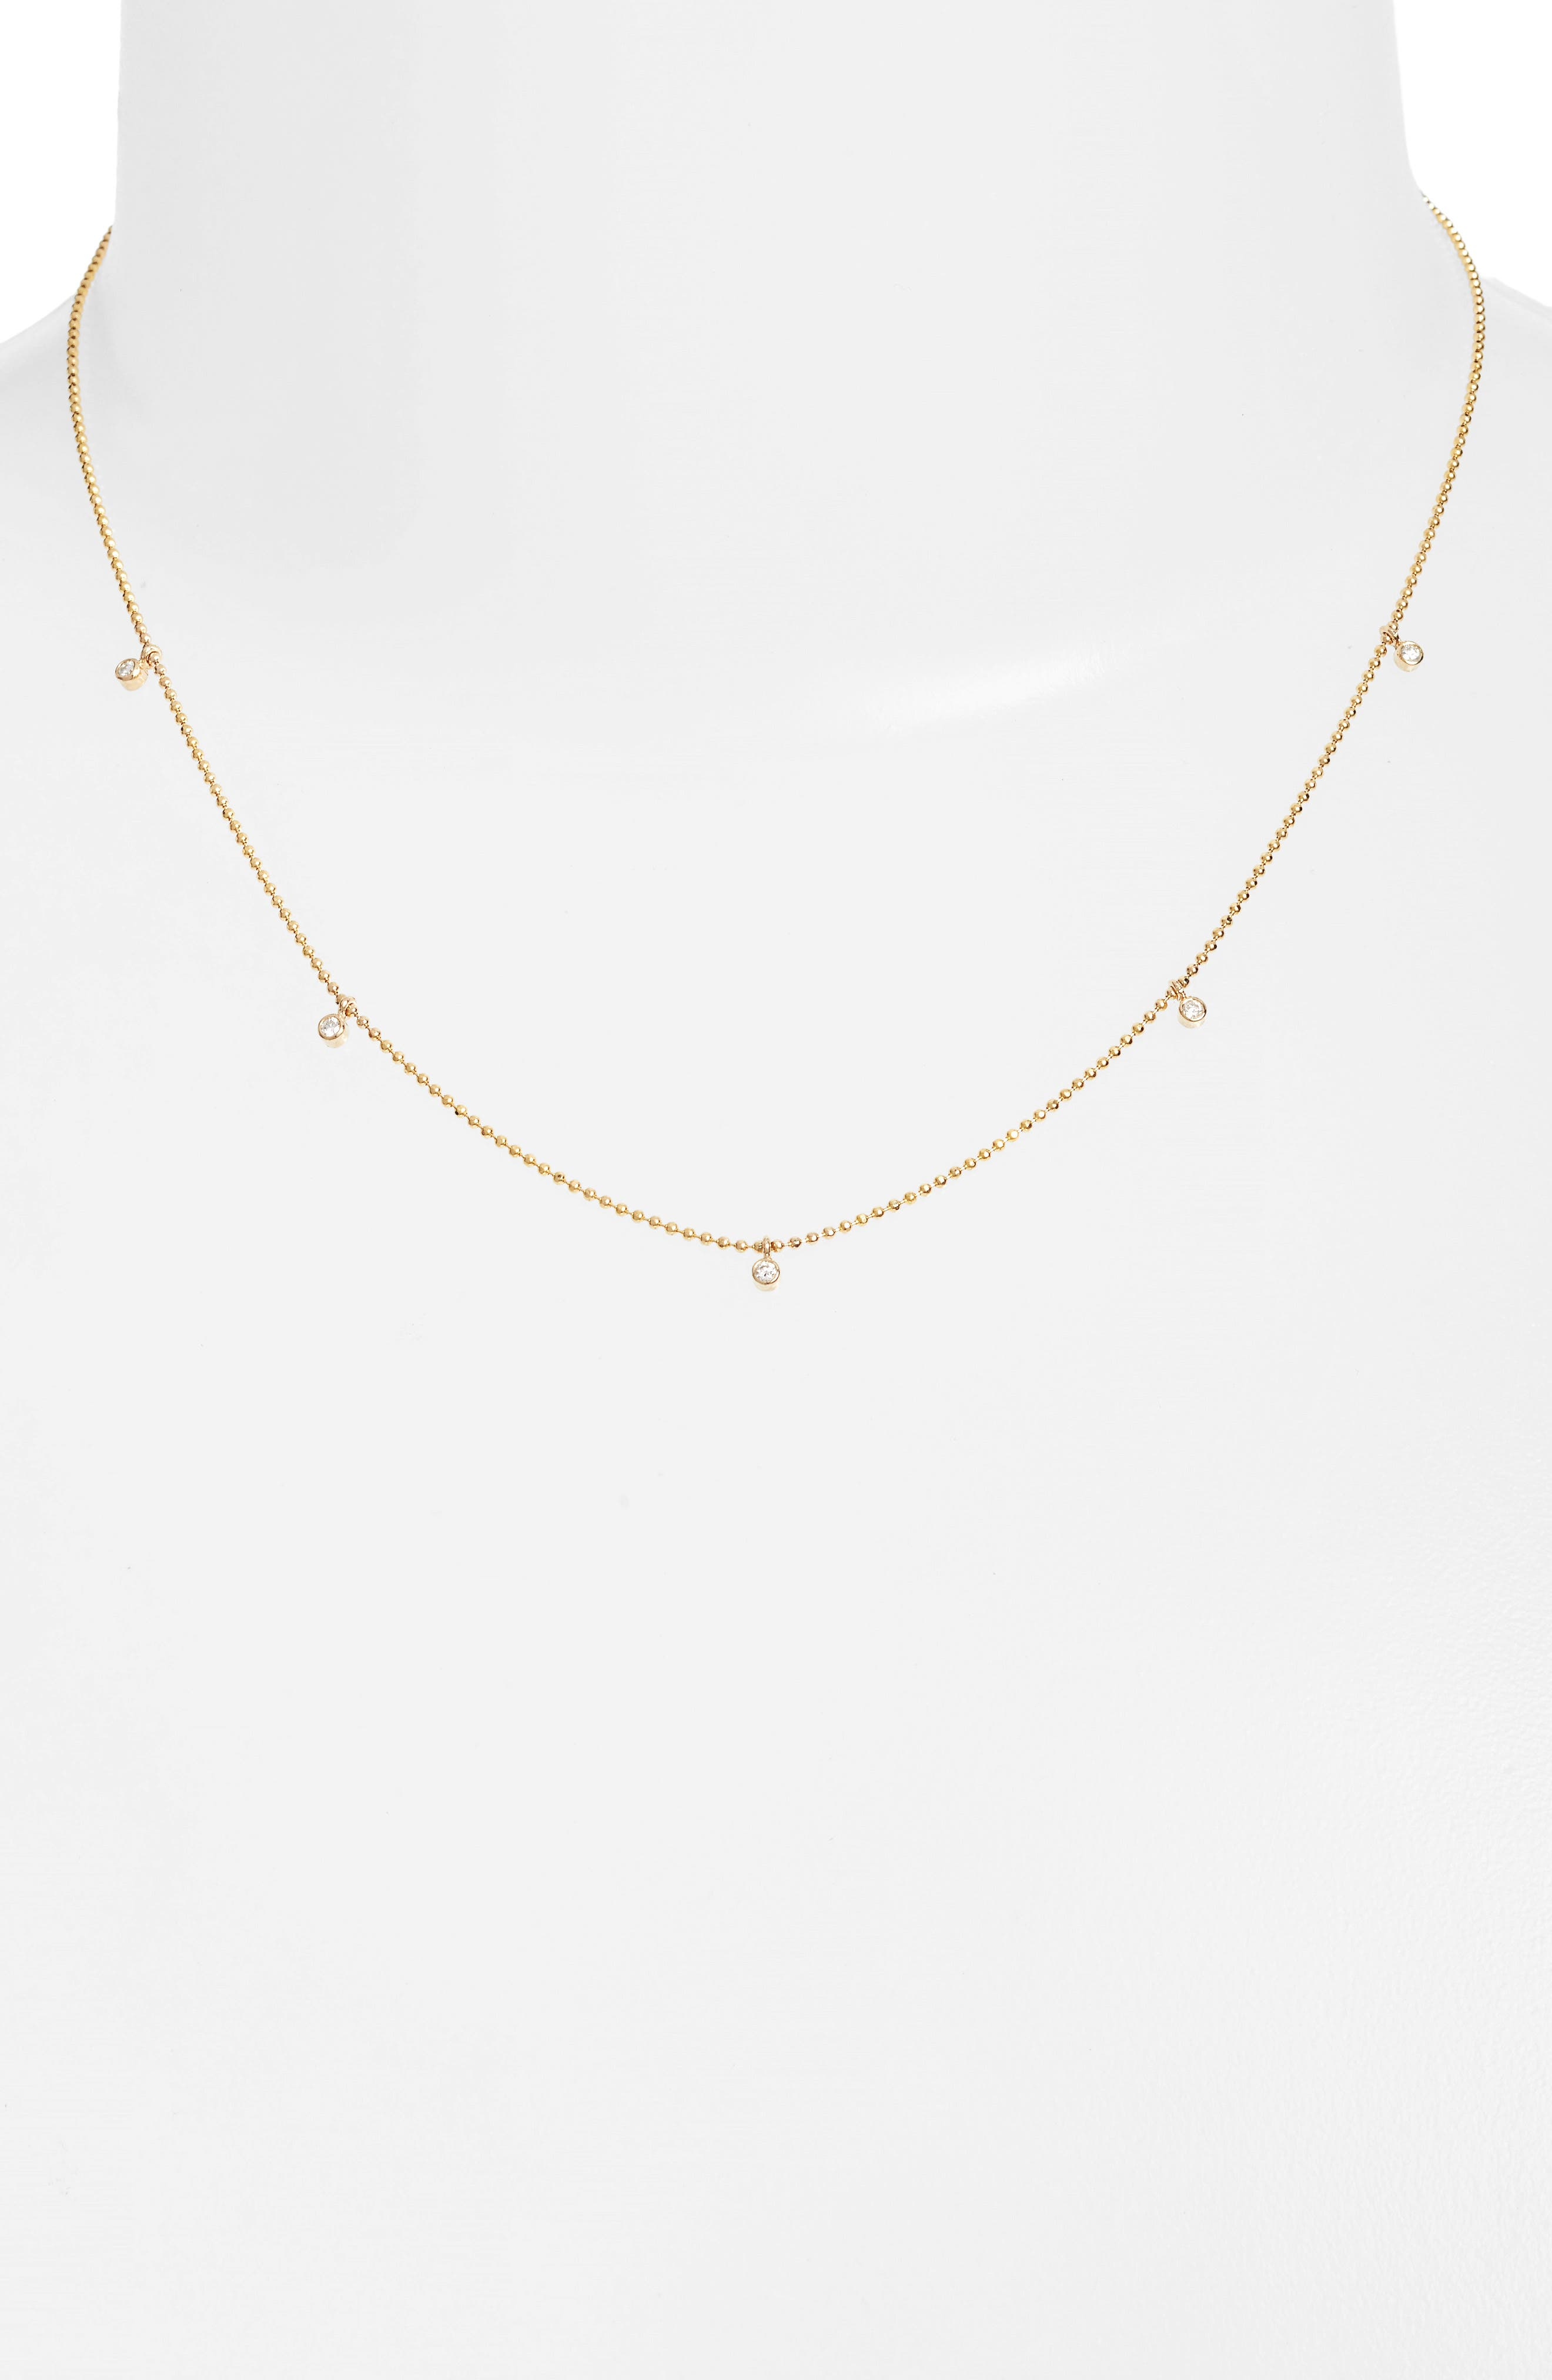 Diamond Charm Necklace,                             Main thumbnail 1, color,                             Yellow Gold